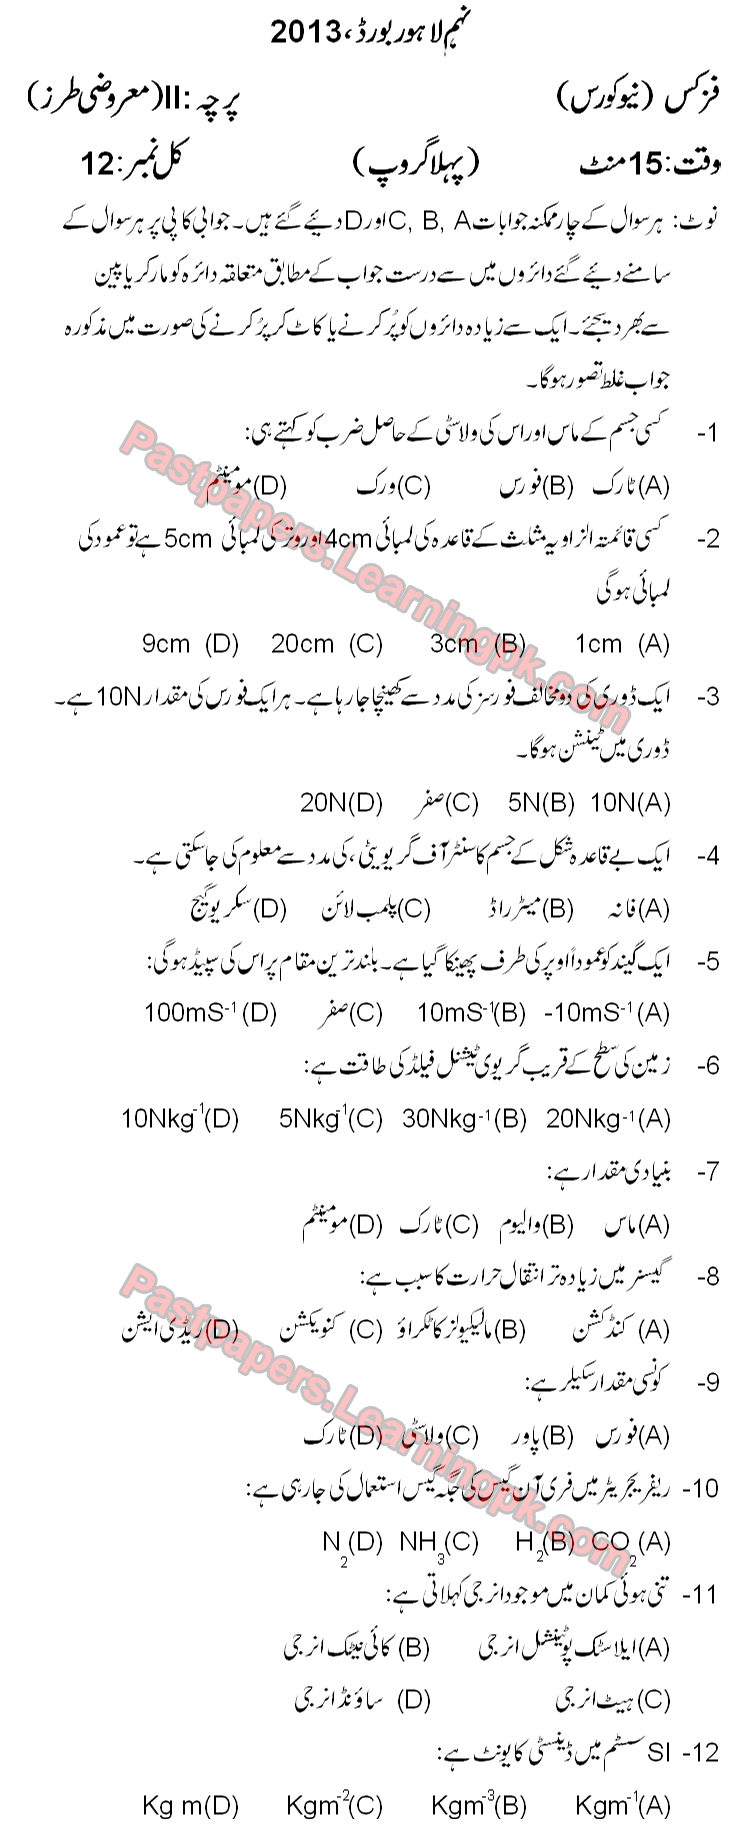 lahore board 2013 9th class physics past papers 5 year old